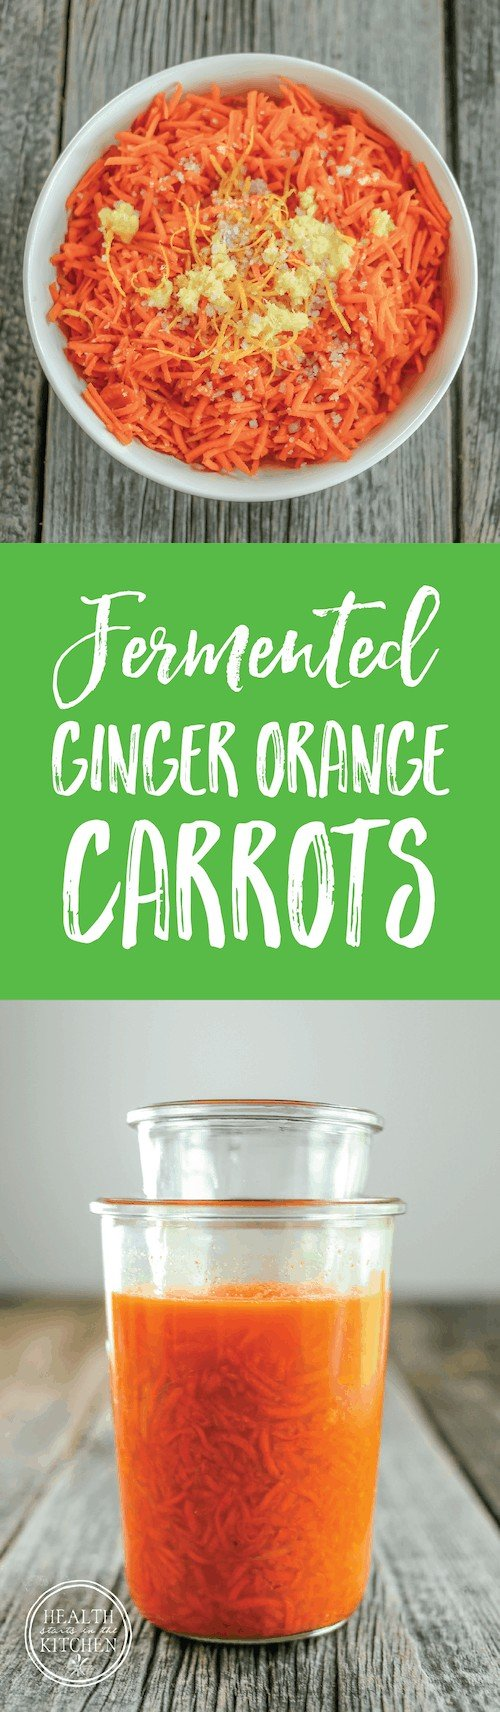 Fermented Ginger Orange Carrots